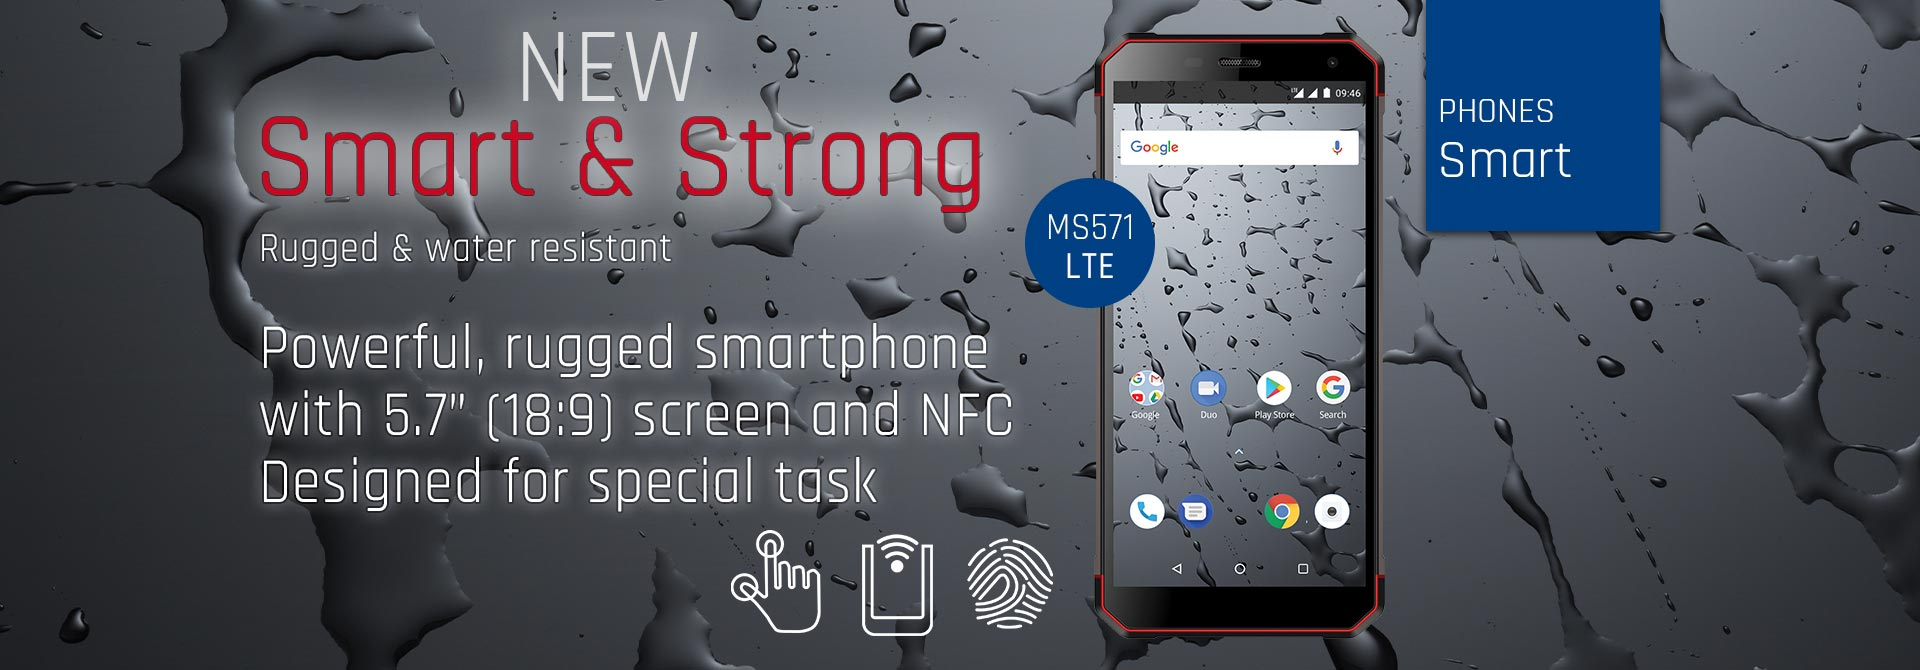 Telefoane Smart & Strong MS571 LTE